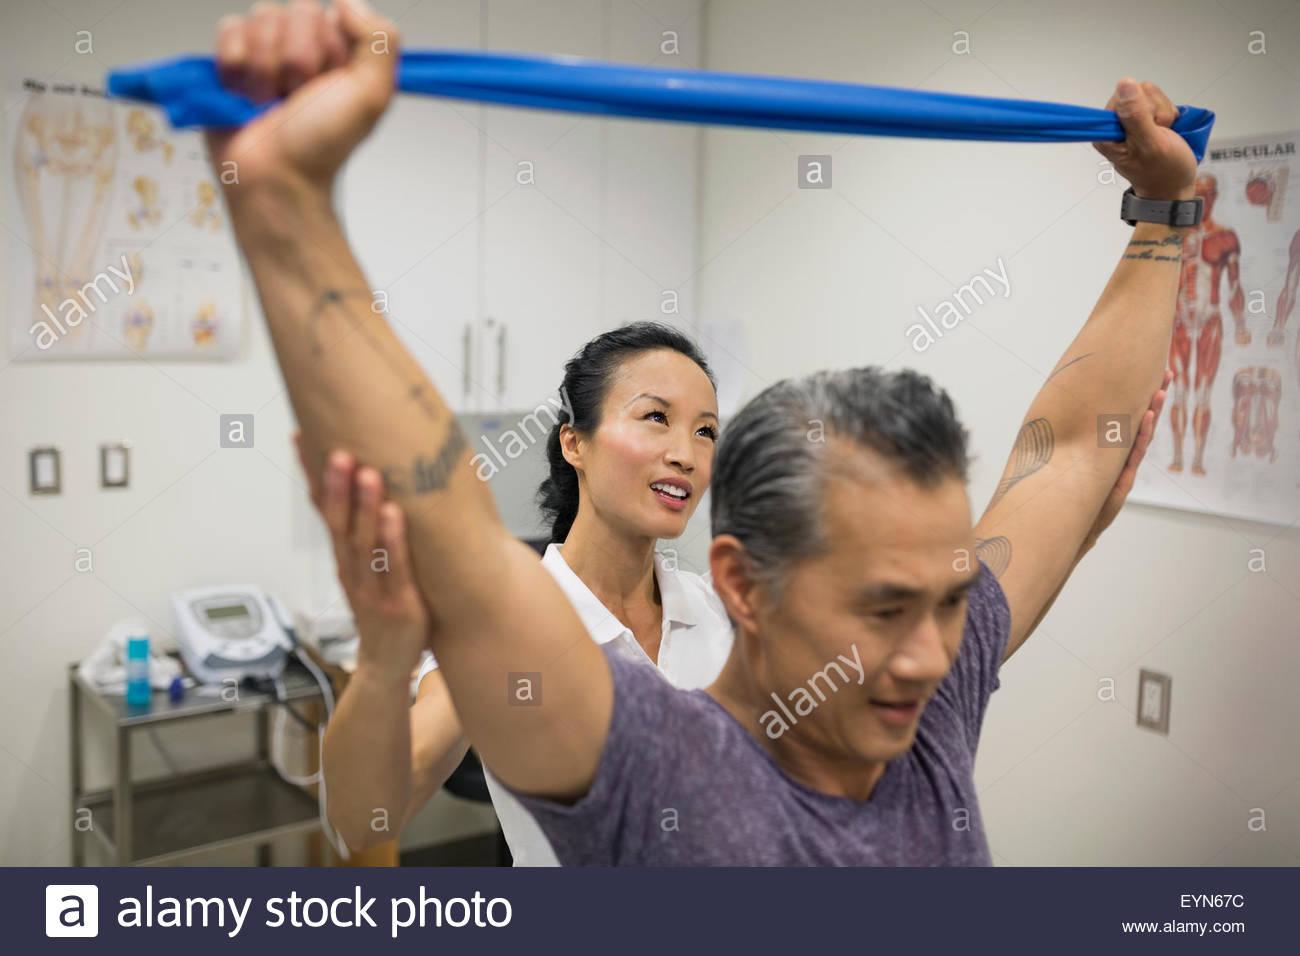 Physical therapist guiding patient pulling resistance band - Stock Image